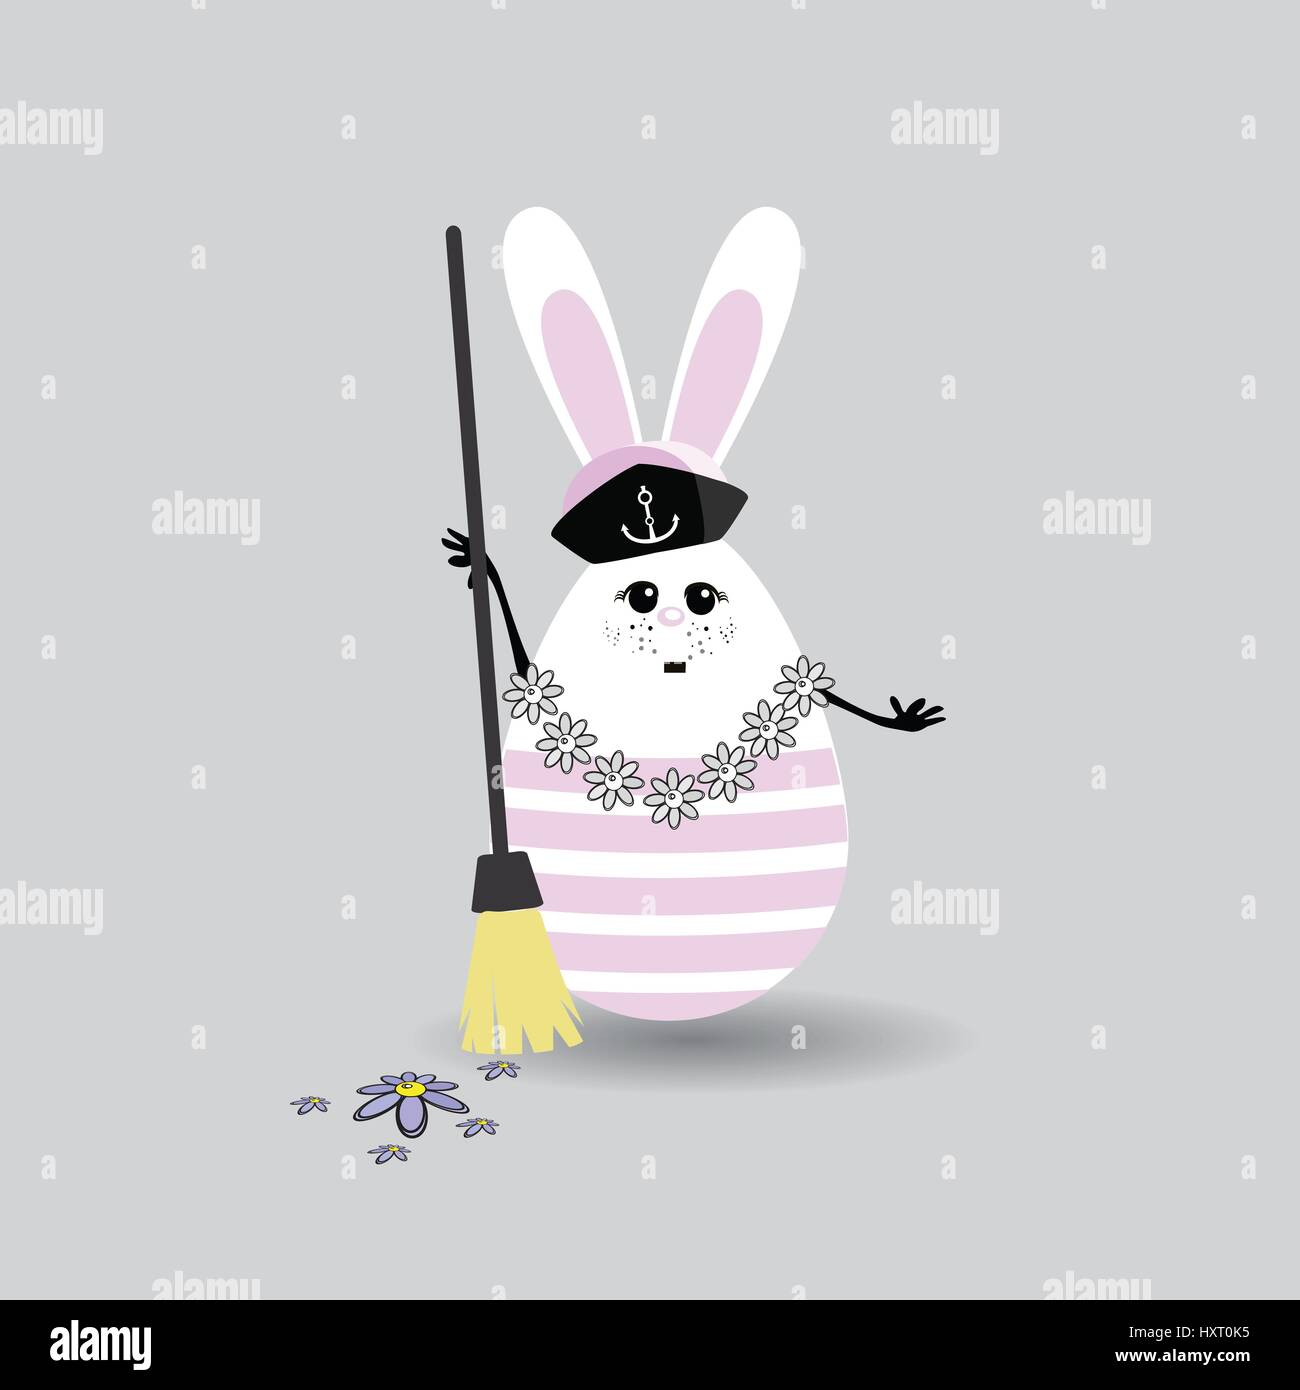 Broom Stick Bunny Mirror: Mopping The Floor Stock Vector Images